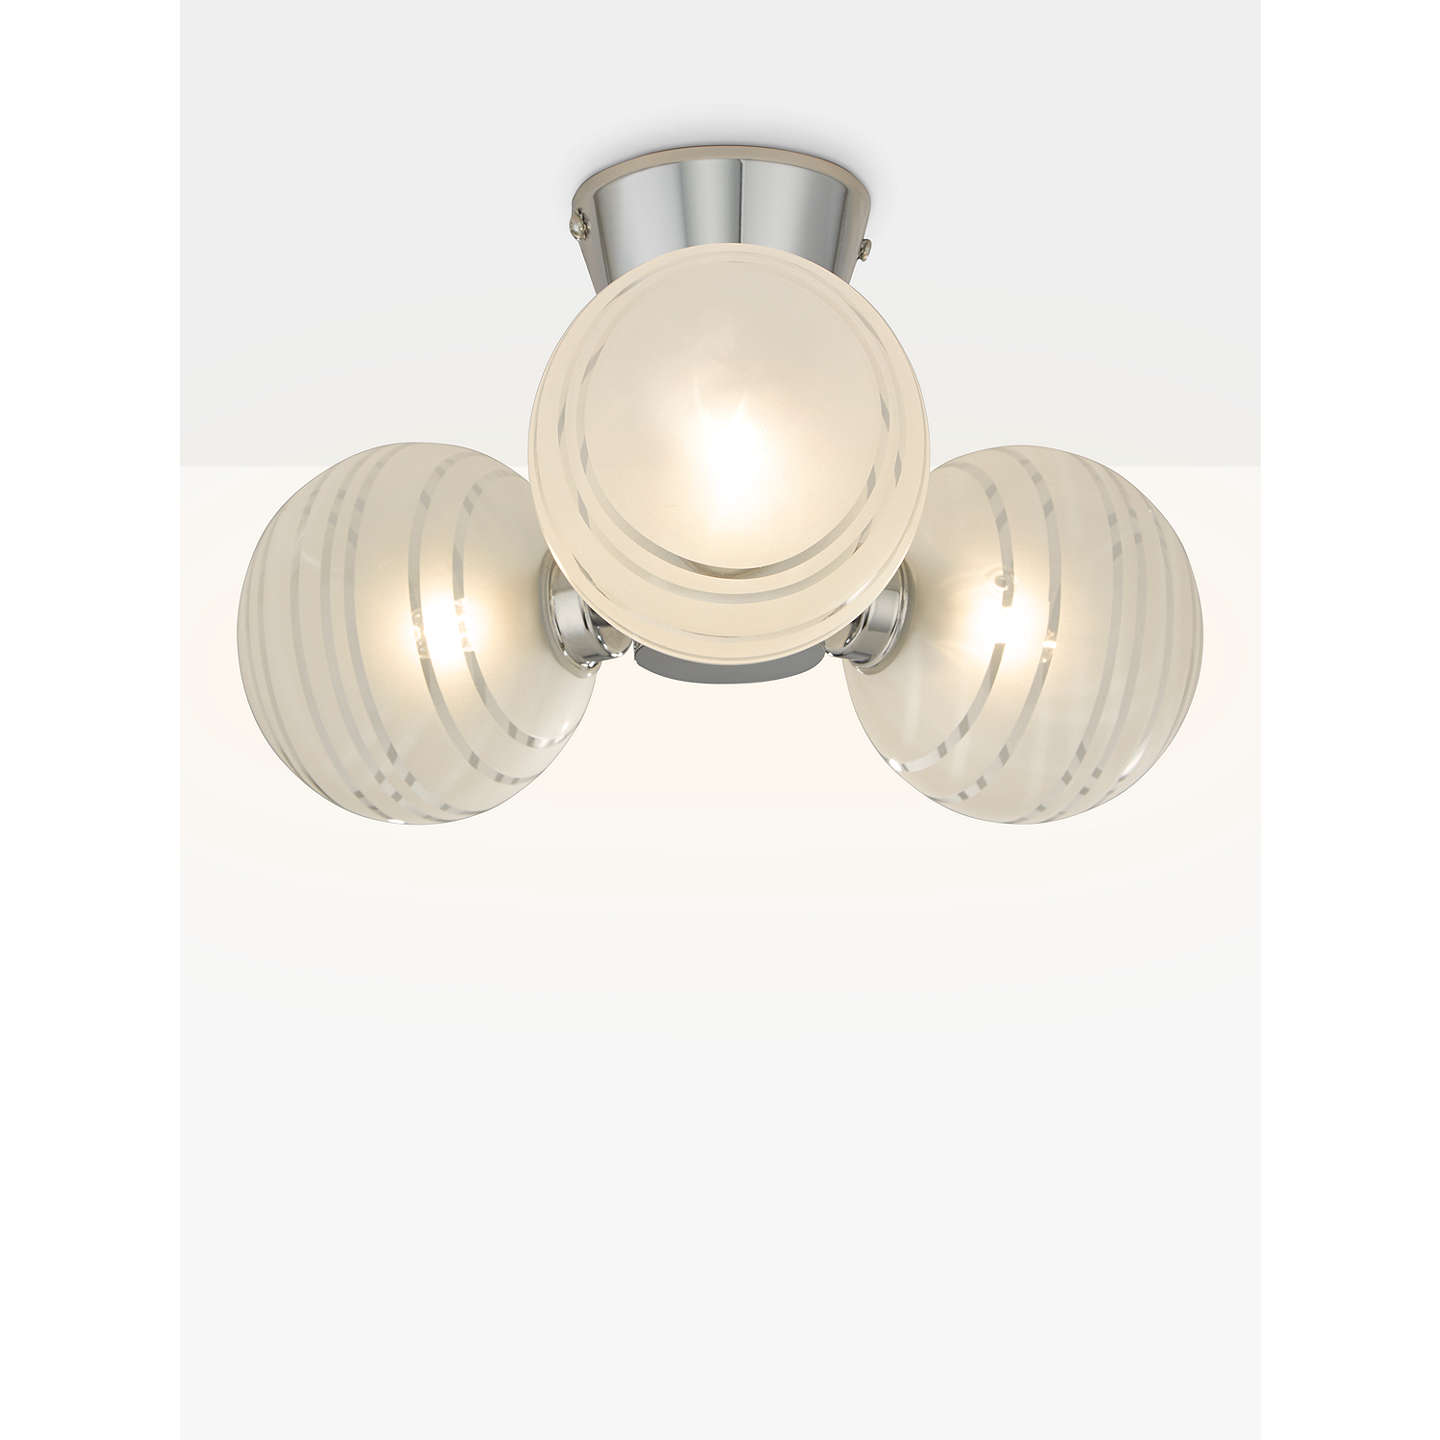 John lewis liam 3 ball lined glass flush bathroom light clear buyjohn lewis liam 3 ball lined glass flush bathroom light clearchrome online at aloadofball Gallery